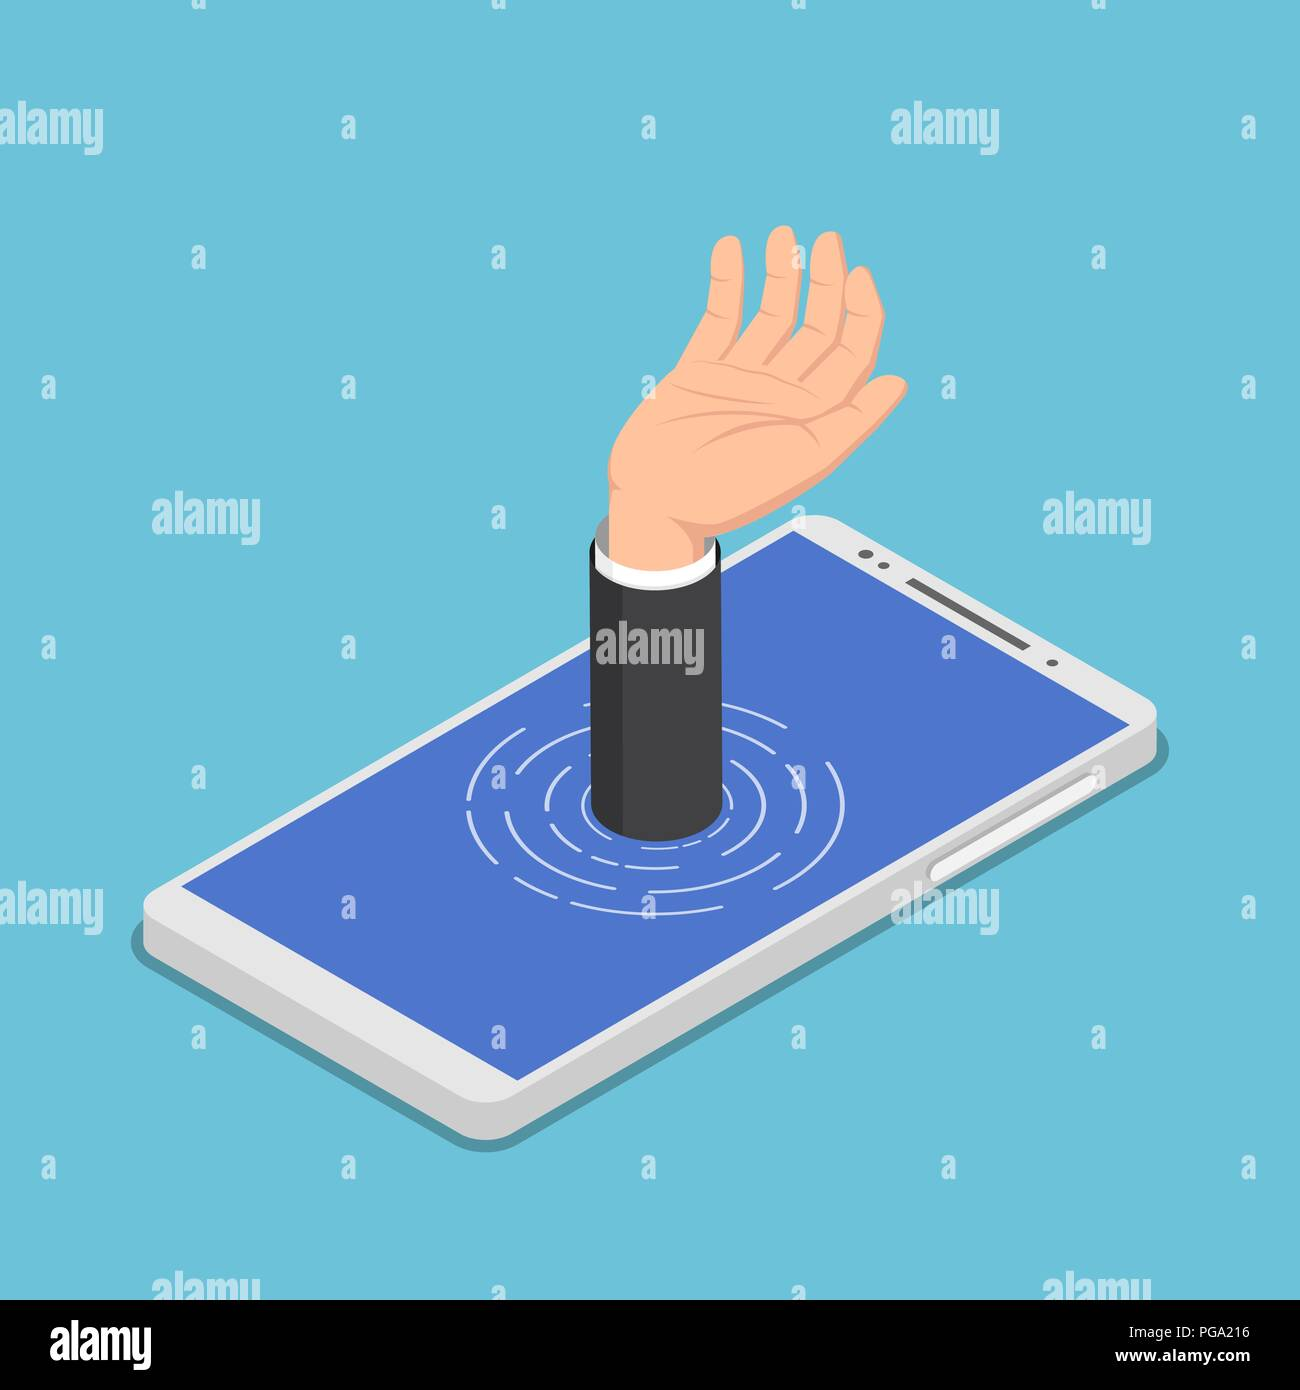 Flat 3d isometric businessman hand get drowned in smartphone. Smartphone addiction concept. - Stock Image